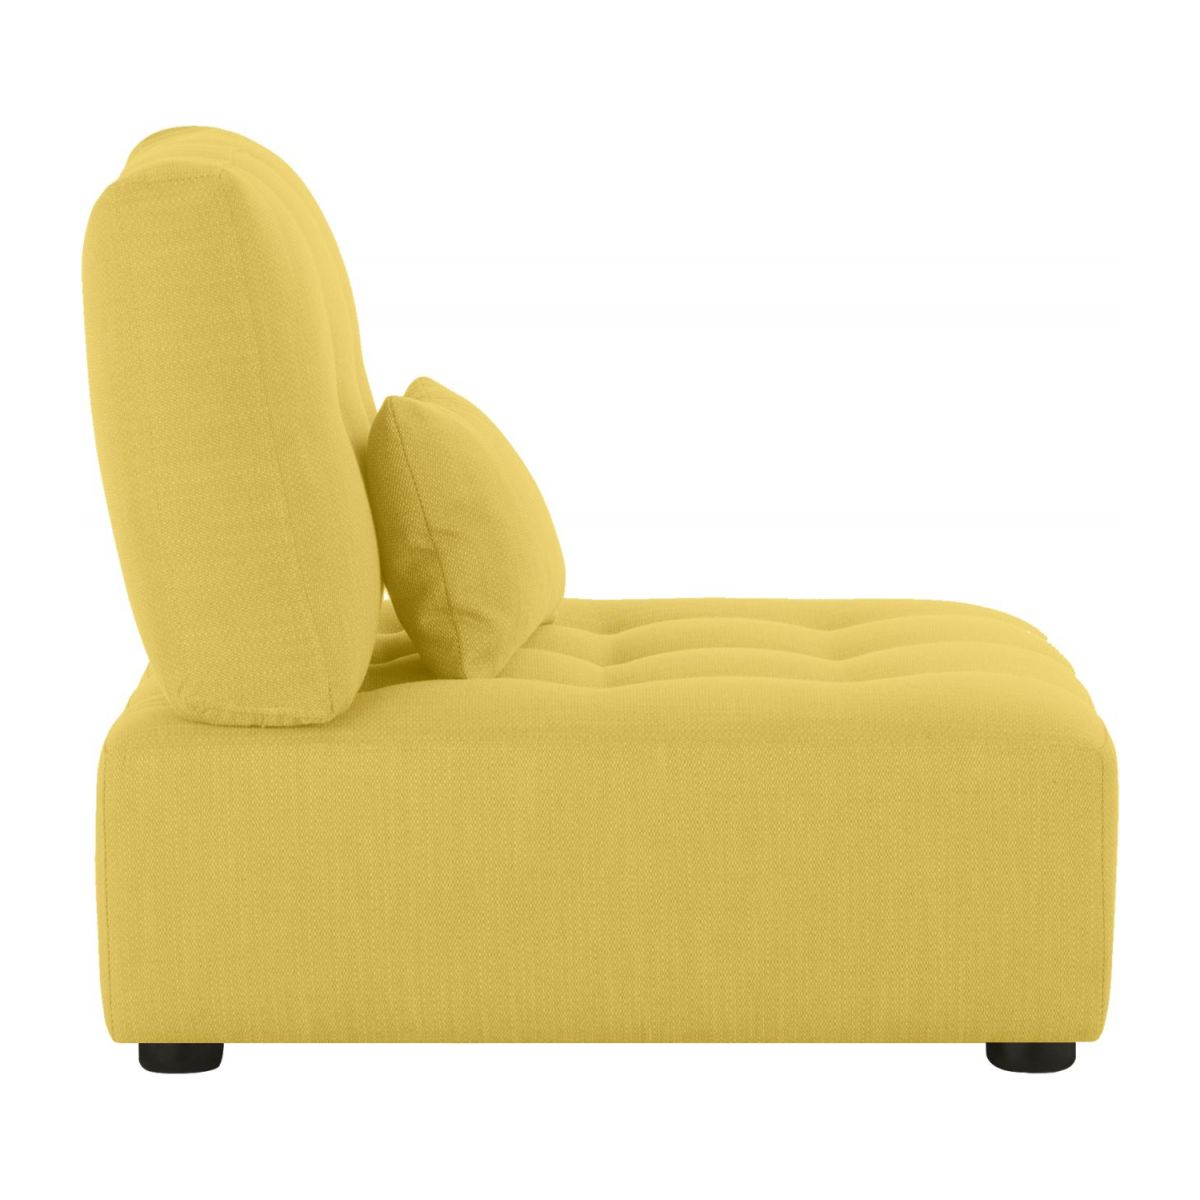 Chaiselongue de tela-amarillo mostaza n°5